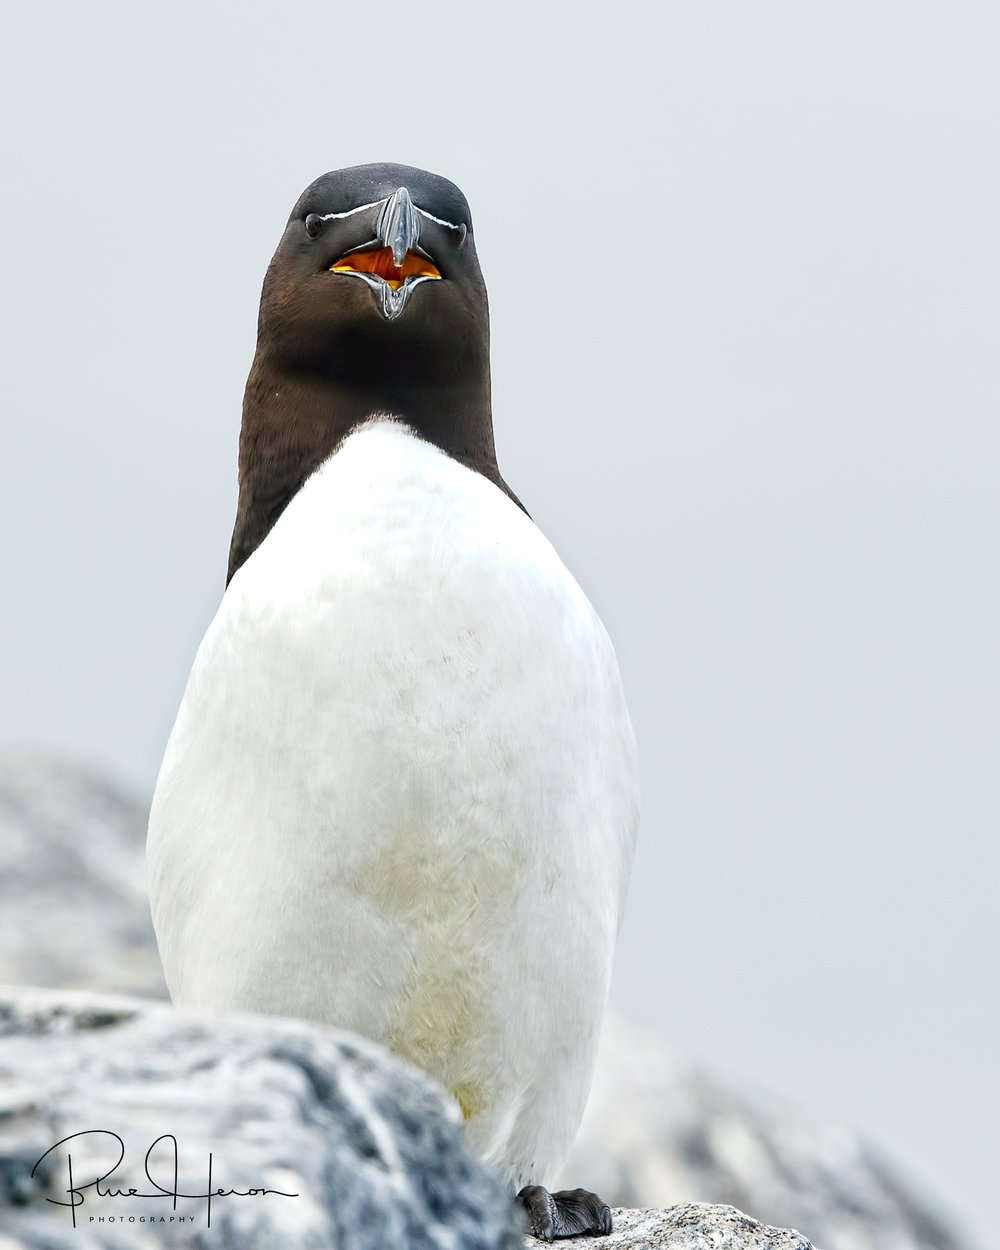 Now we know where they got the idea for Darth Vader's helmet..Razorbill laughing at us..